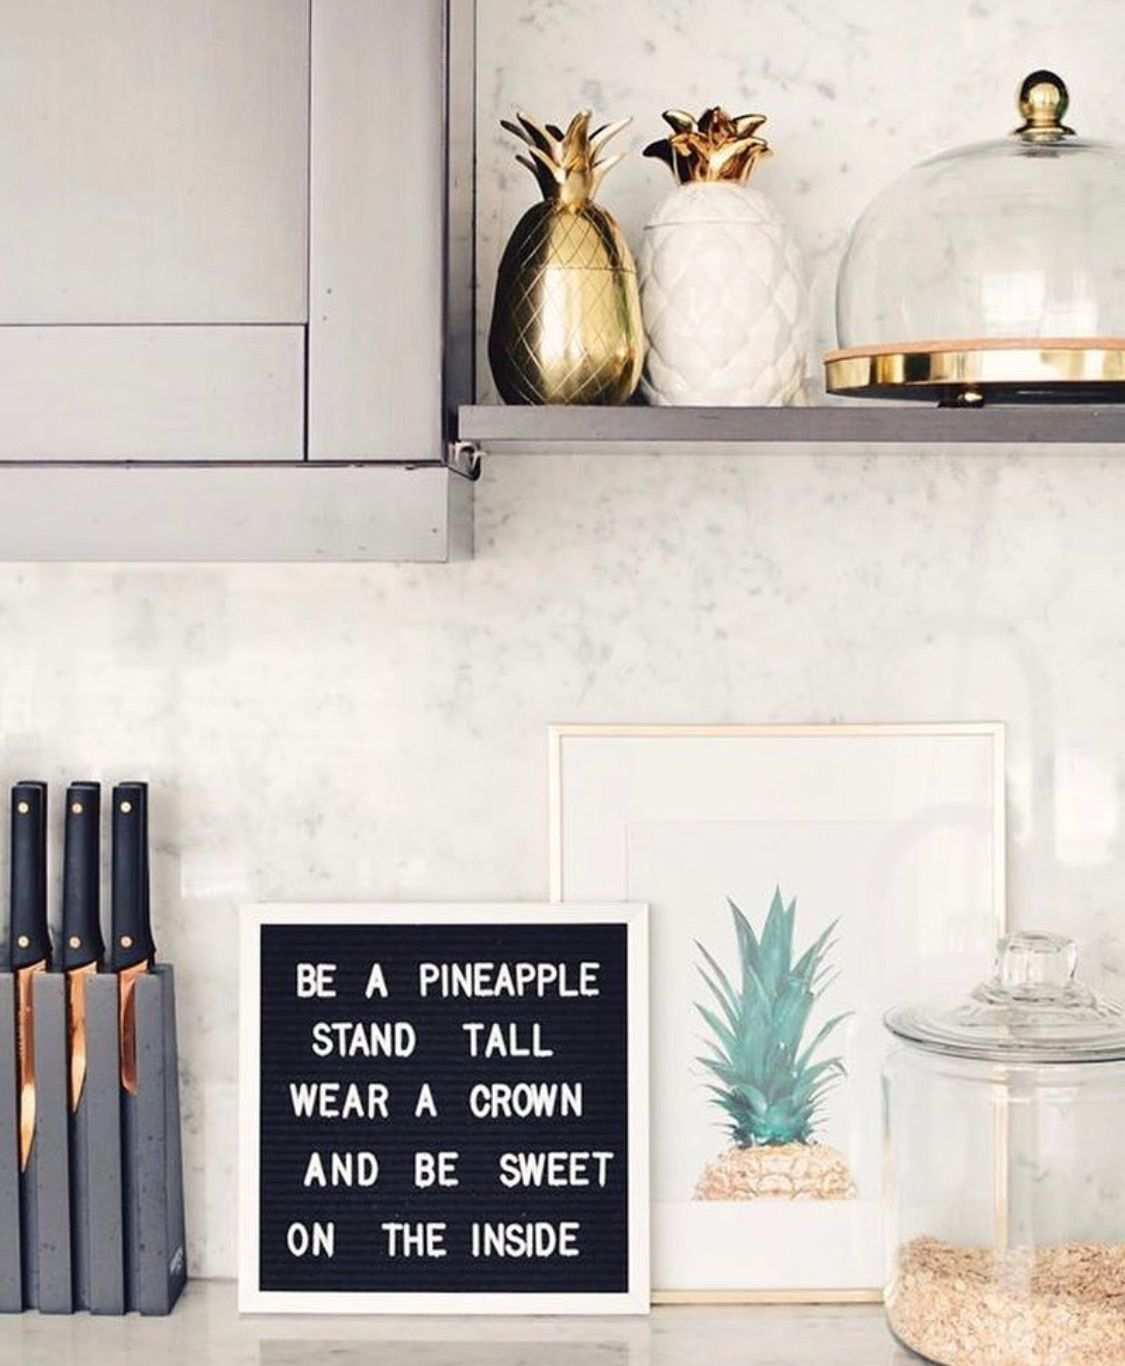 Pin by Danielle Flener on DIY wall decor for the home in